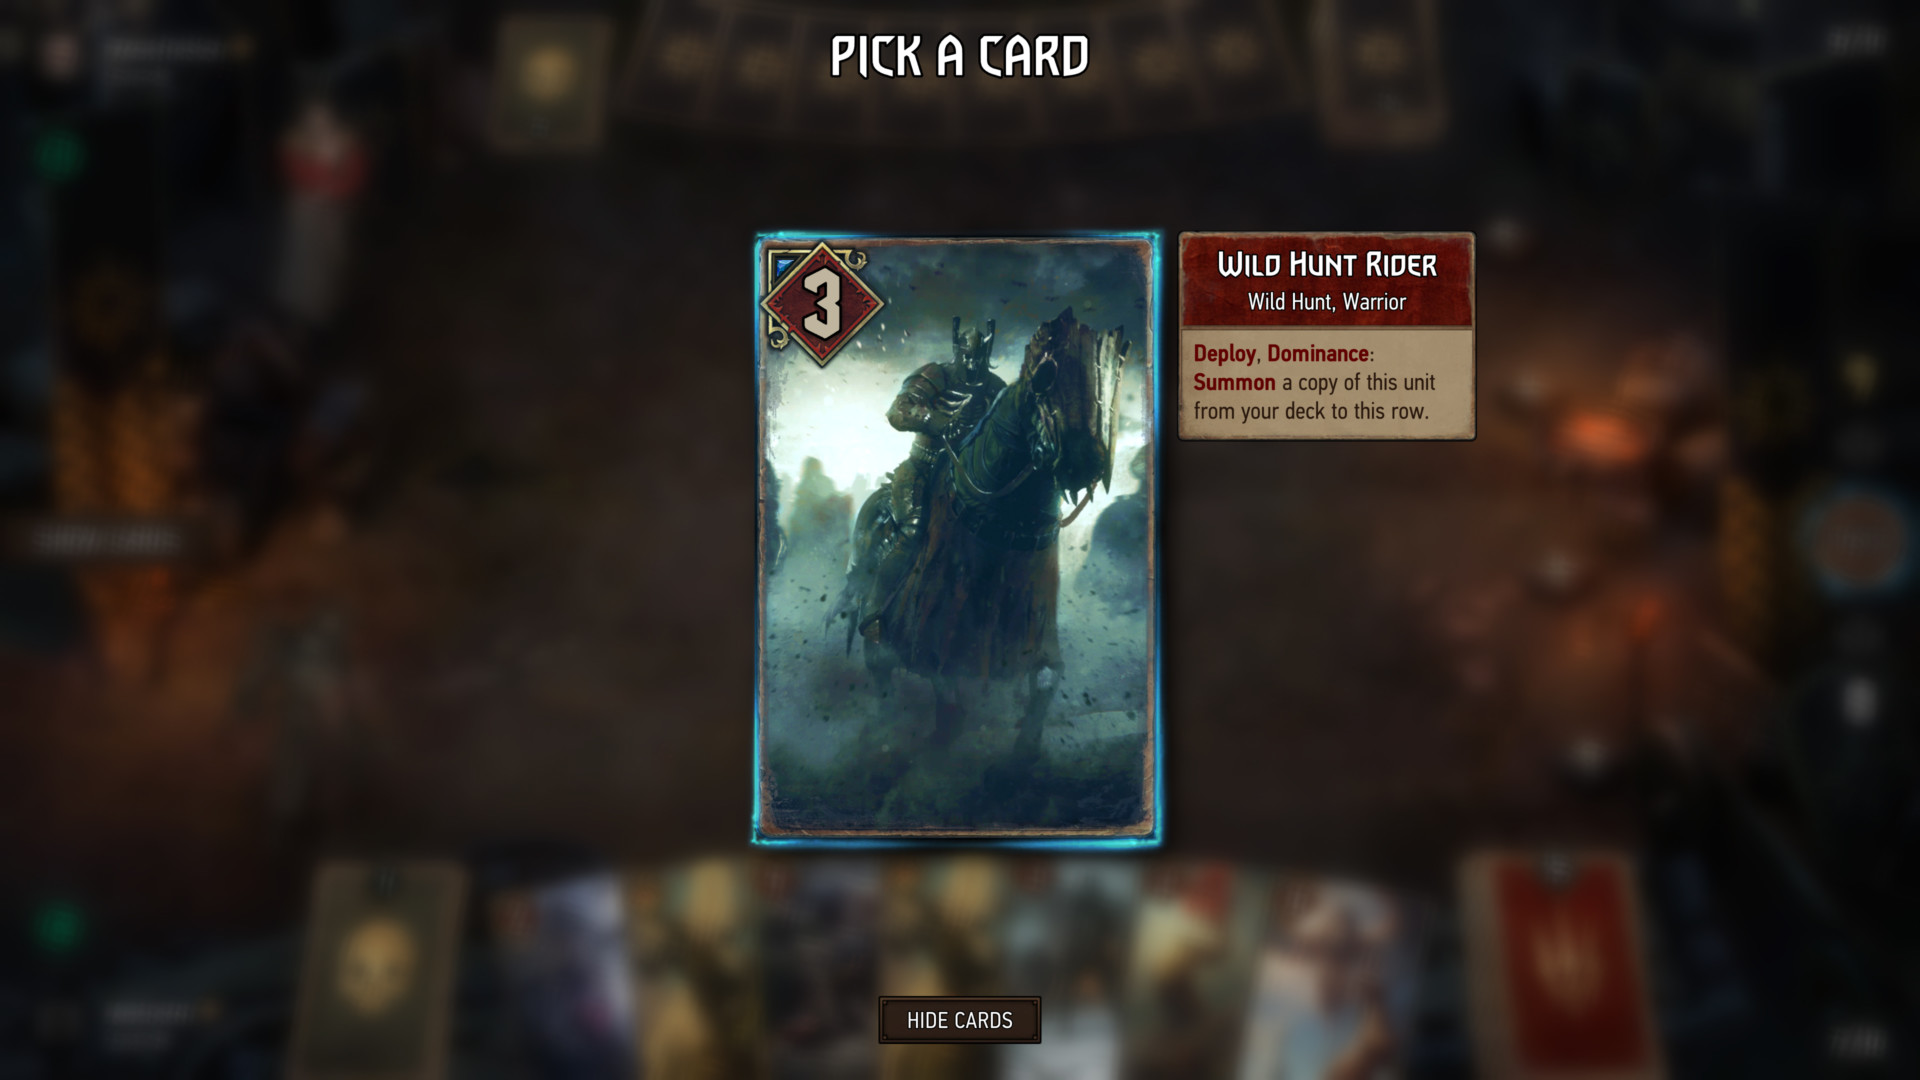 Pick a card screenshot of Gwent: The Witcher Card Game video game interface.